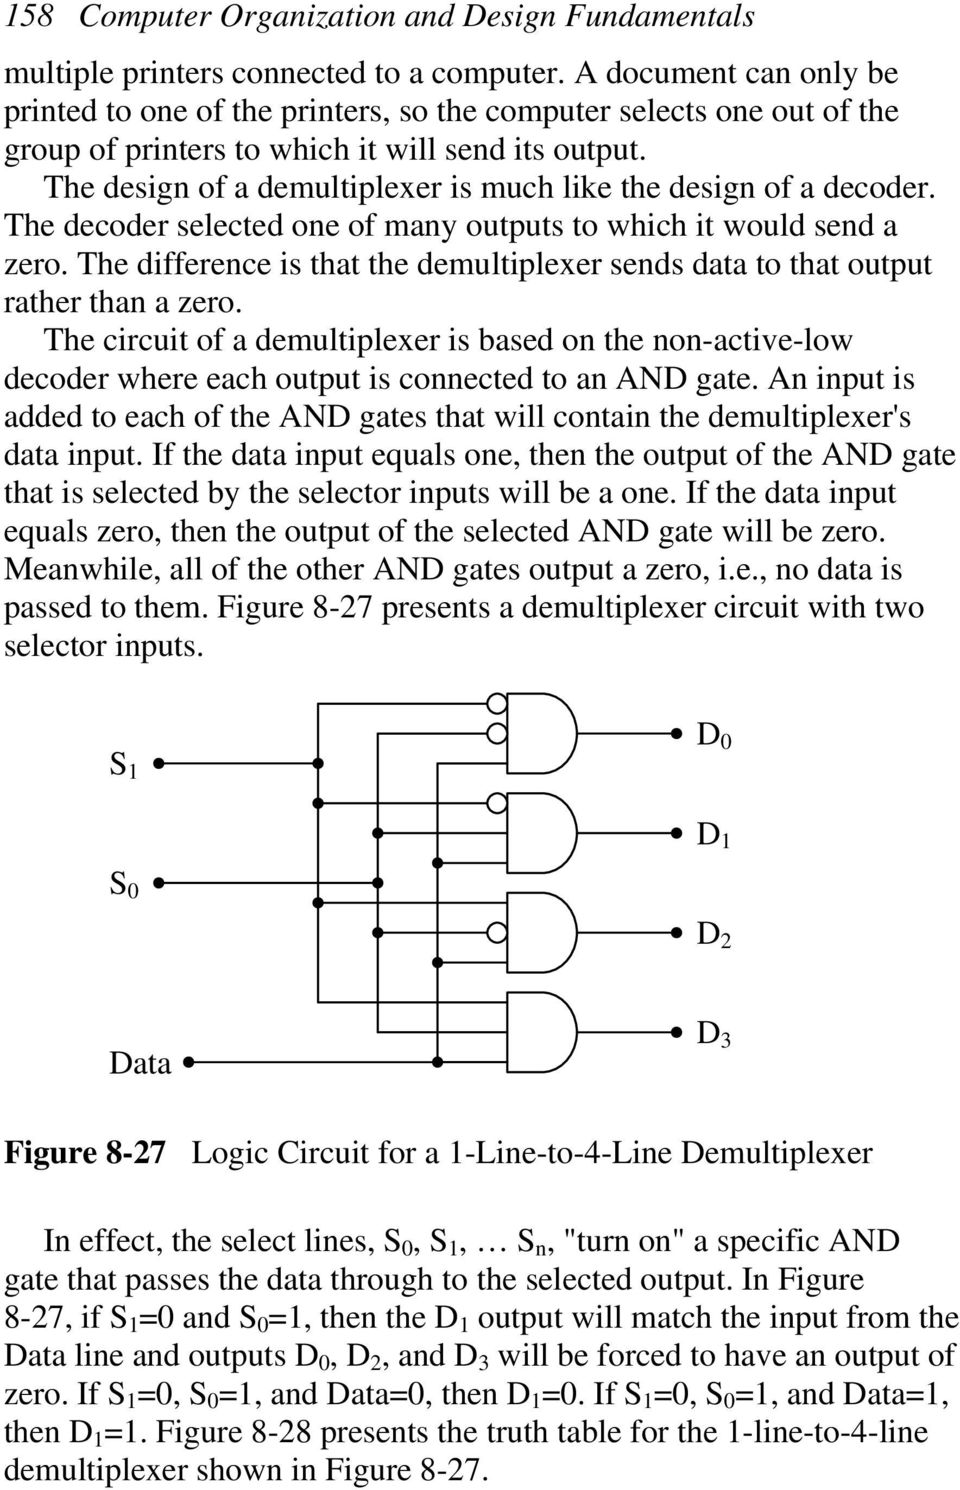 The design of a demultiplexer is much like the design of a decoder. The decoder selected one of many outputs to which it would send a zero.